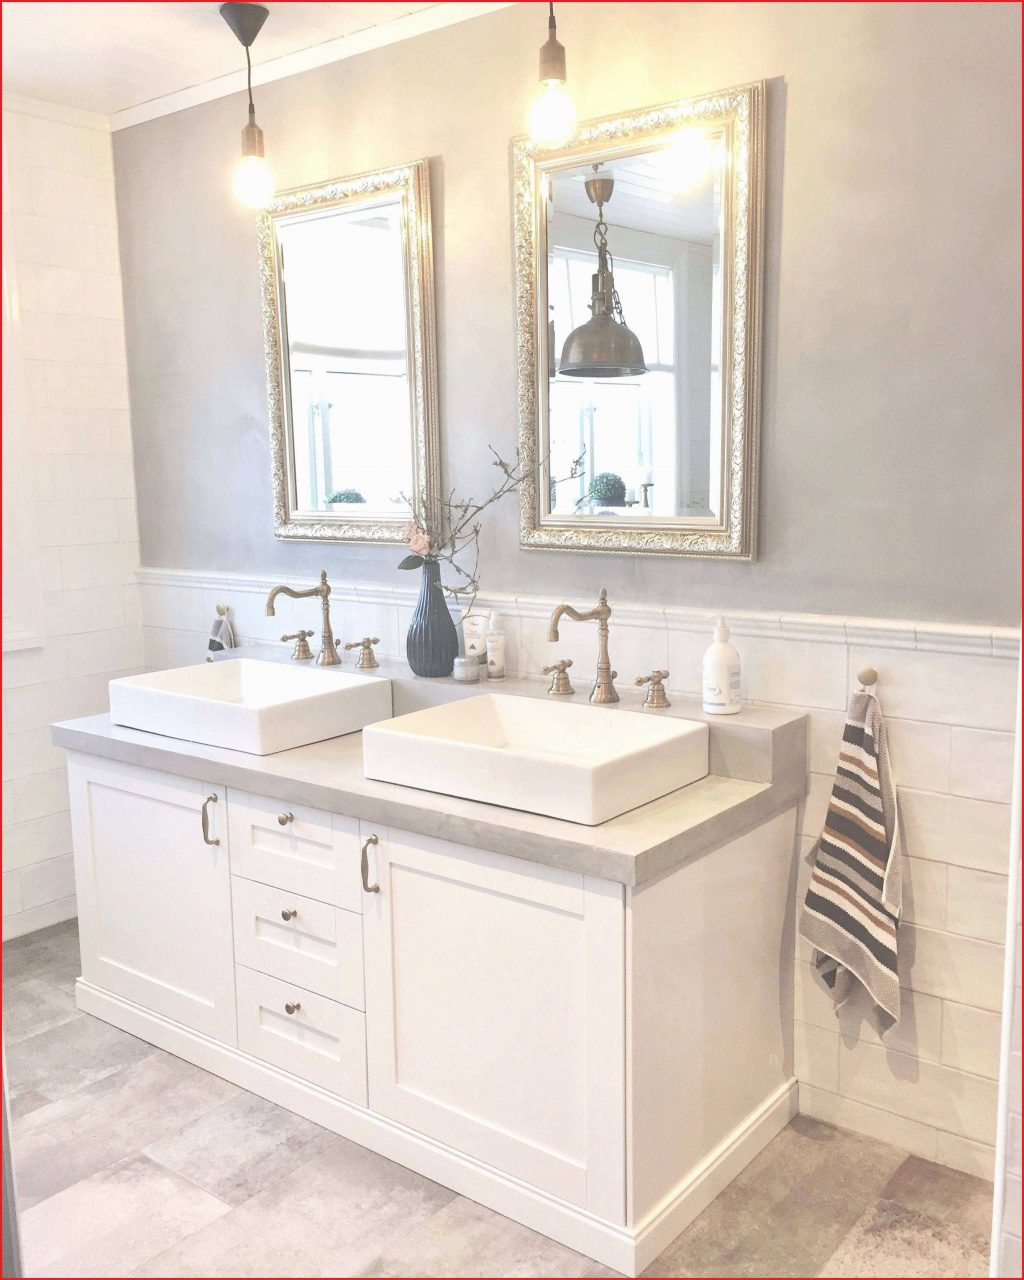 Top Bathroom Vanities Columbus Ohio Photos Of Vanity Accessories